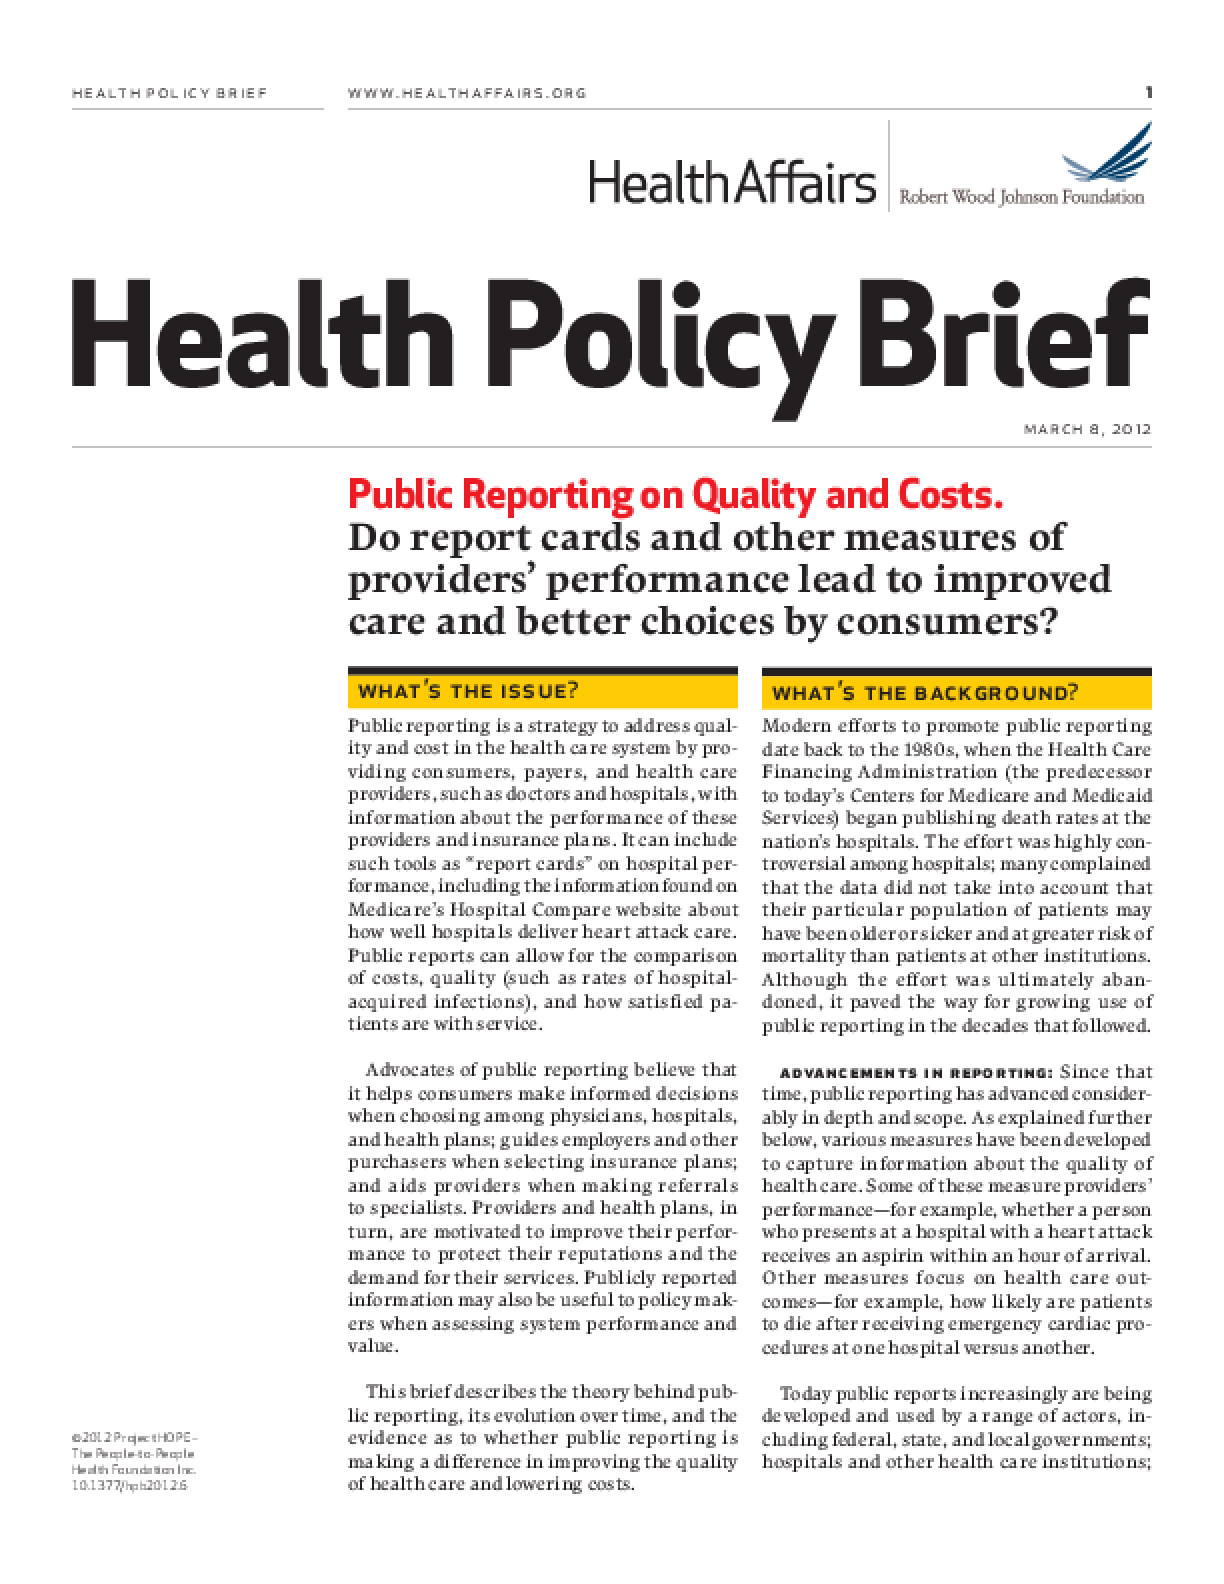 Health Affairs/RWJF Health Policy Brief: Public Reporting on Quality and Costs